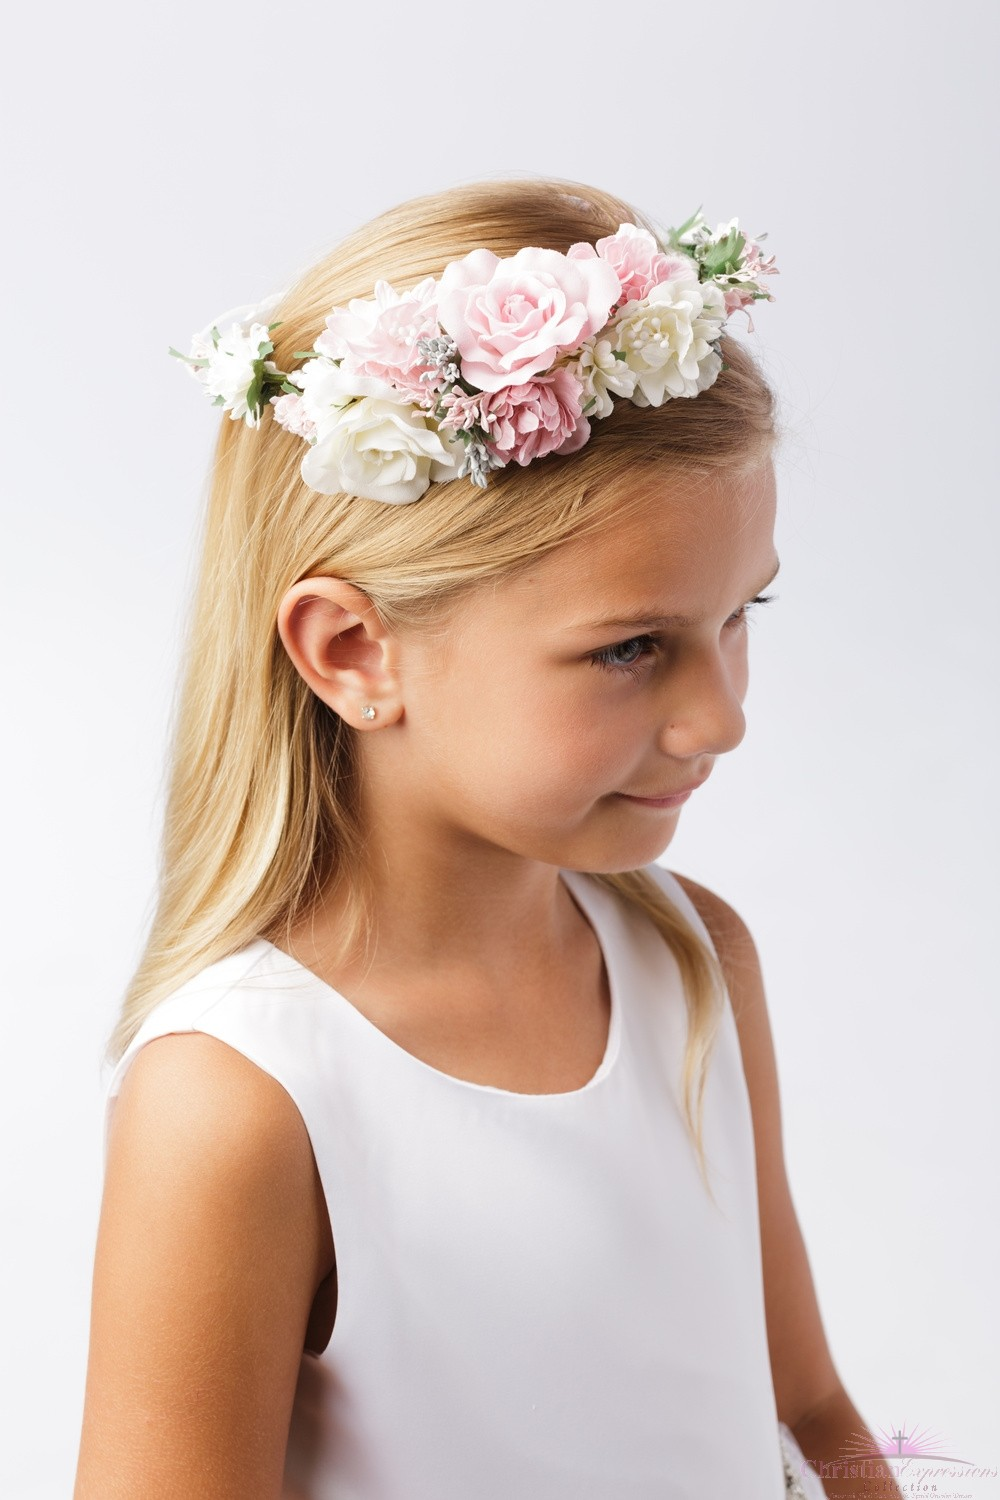 First Communion Floral Crown Wreath Headpiece with Large Flowers